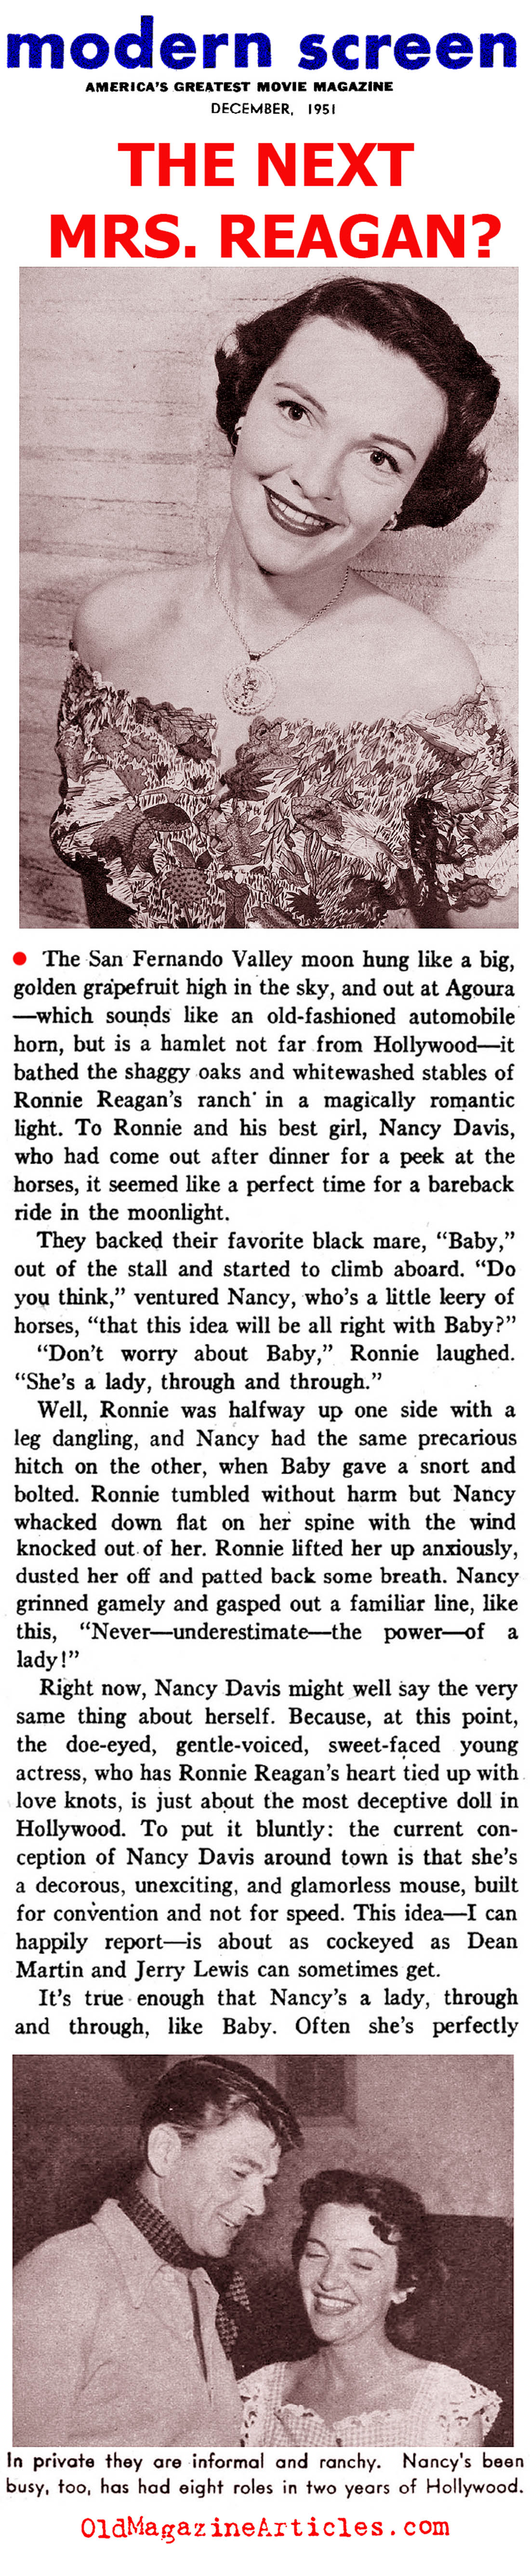 The Young Nancy Reagan (Modern Screen, 1951)